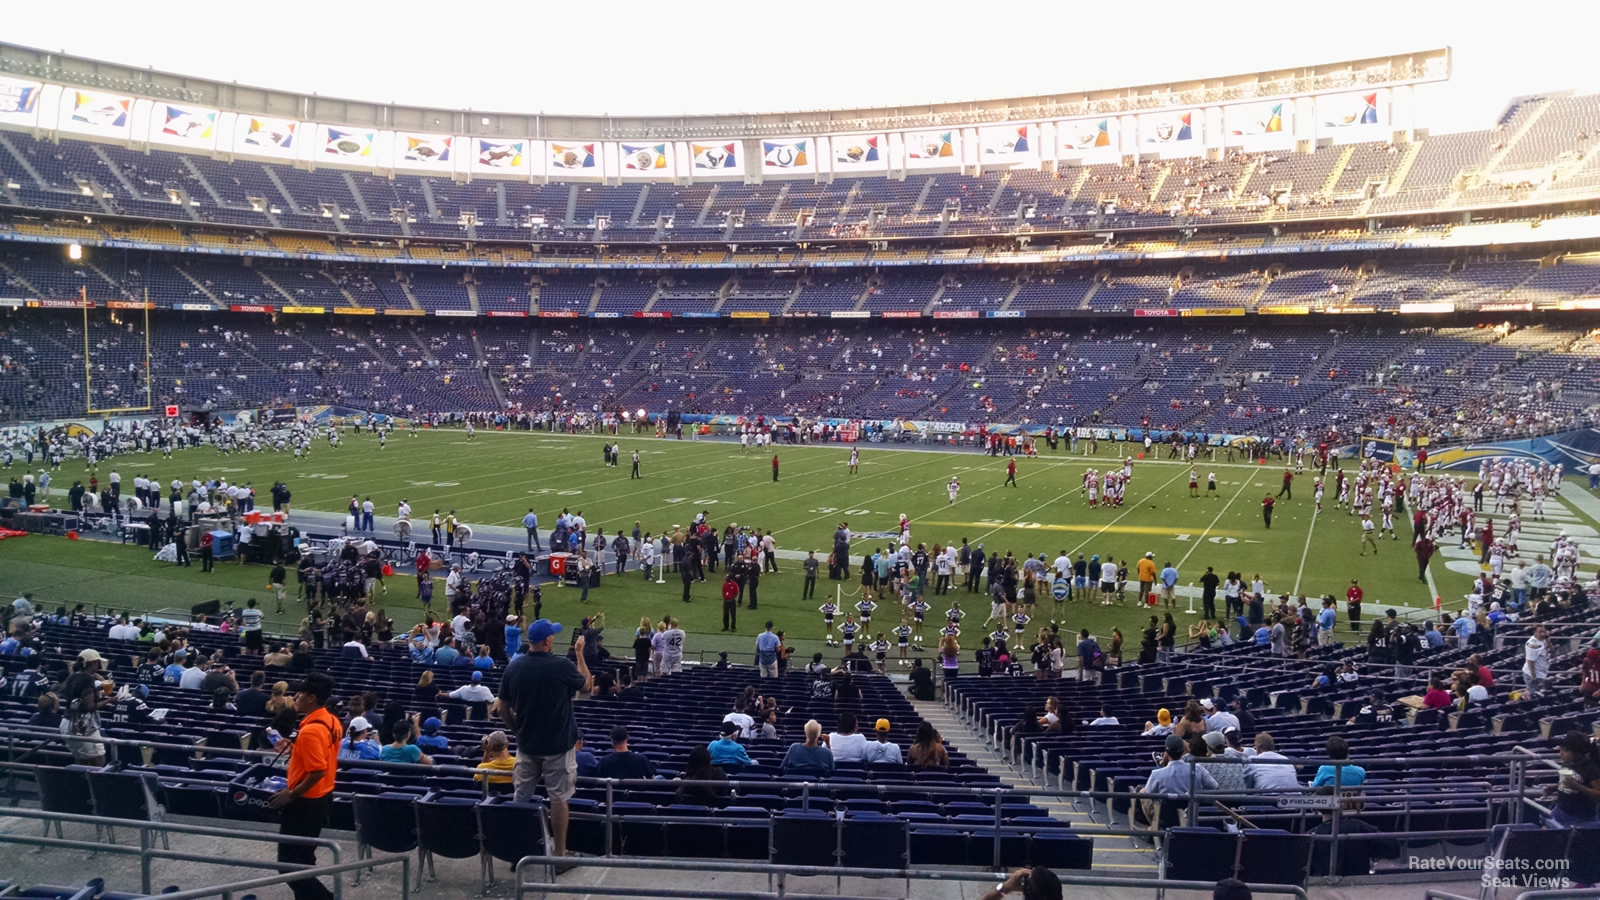 Qualcomm Stadium Plaza 41 Rateyourseats Com